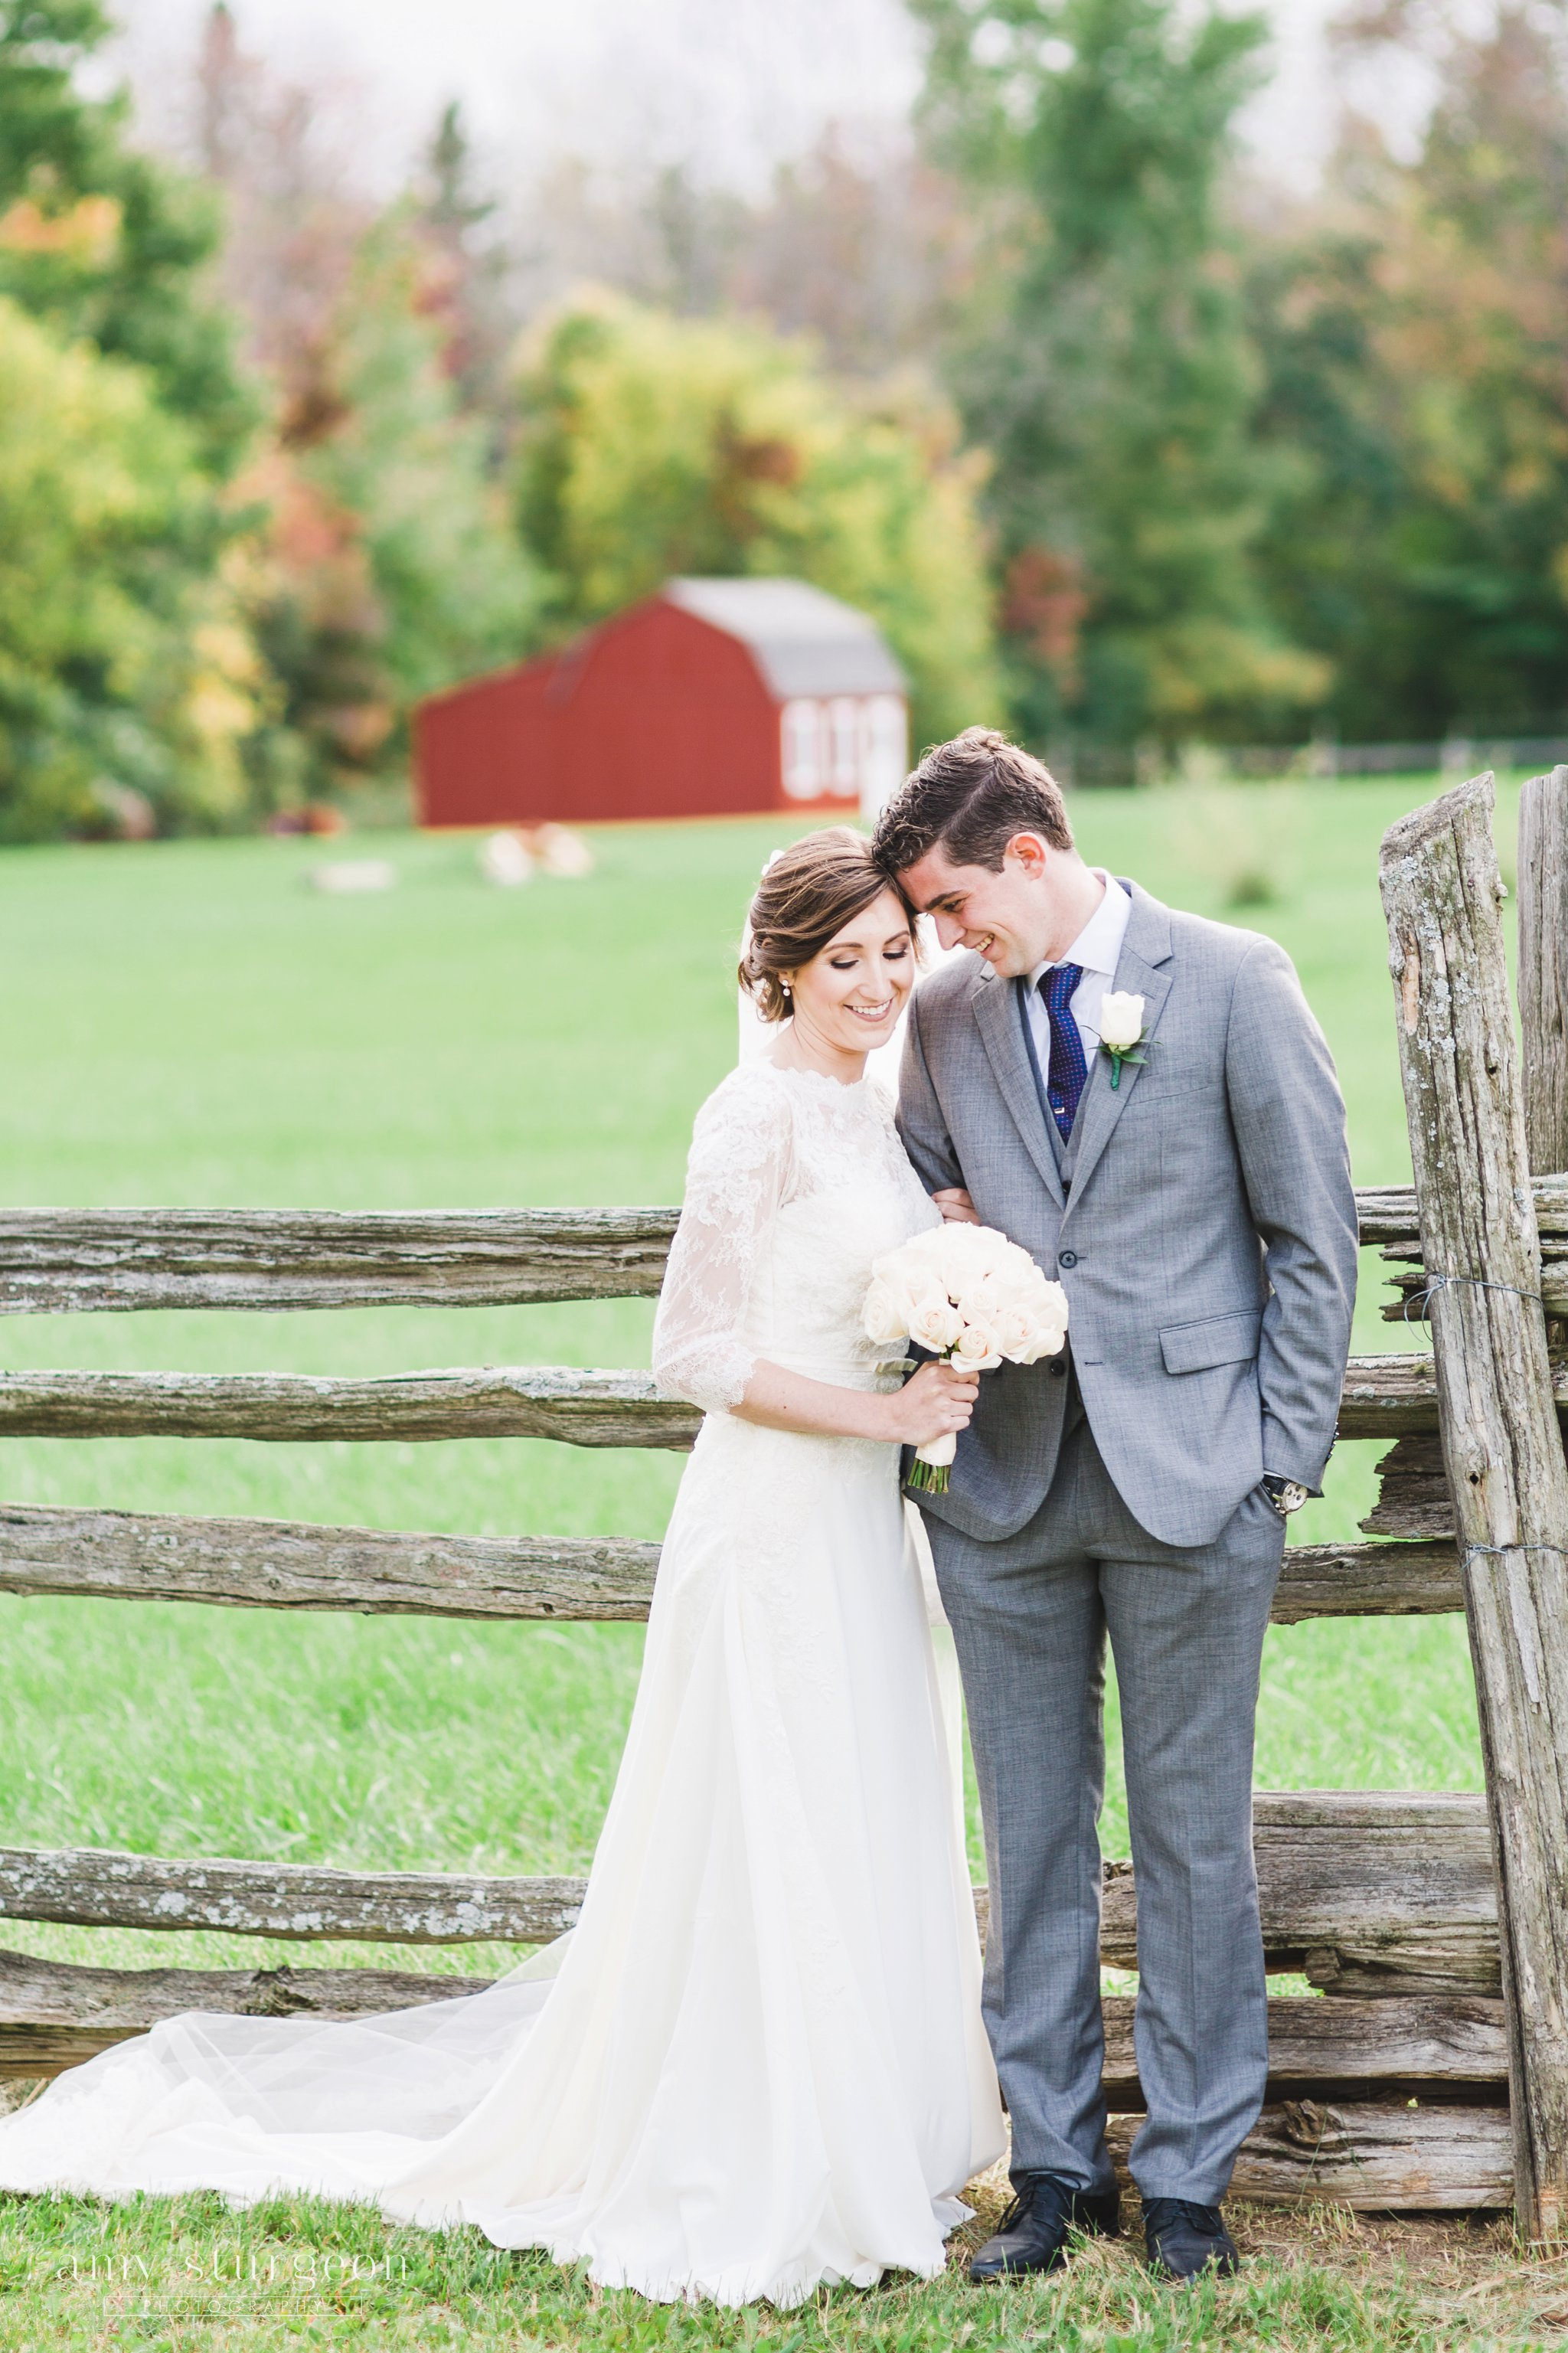 The bride and groom stood by a fence with a red barn in the background at the alpaca farm wedding